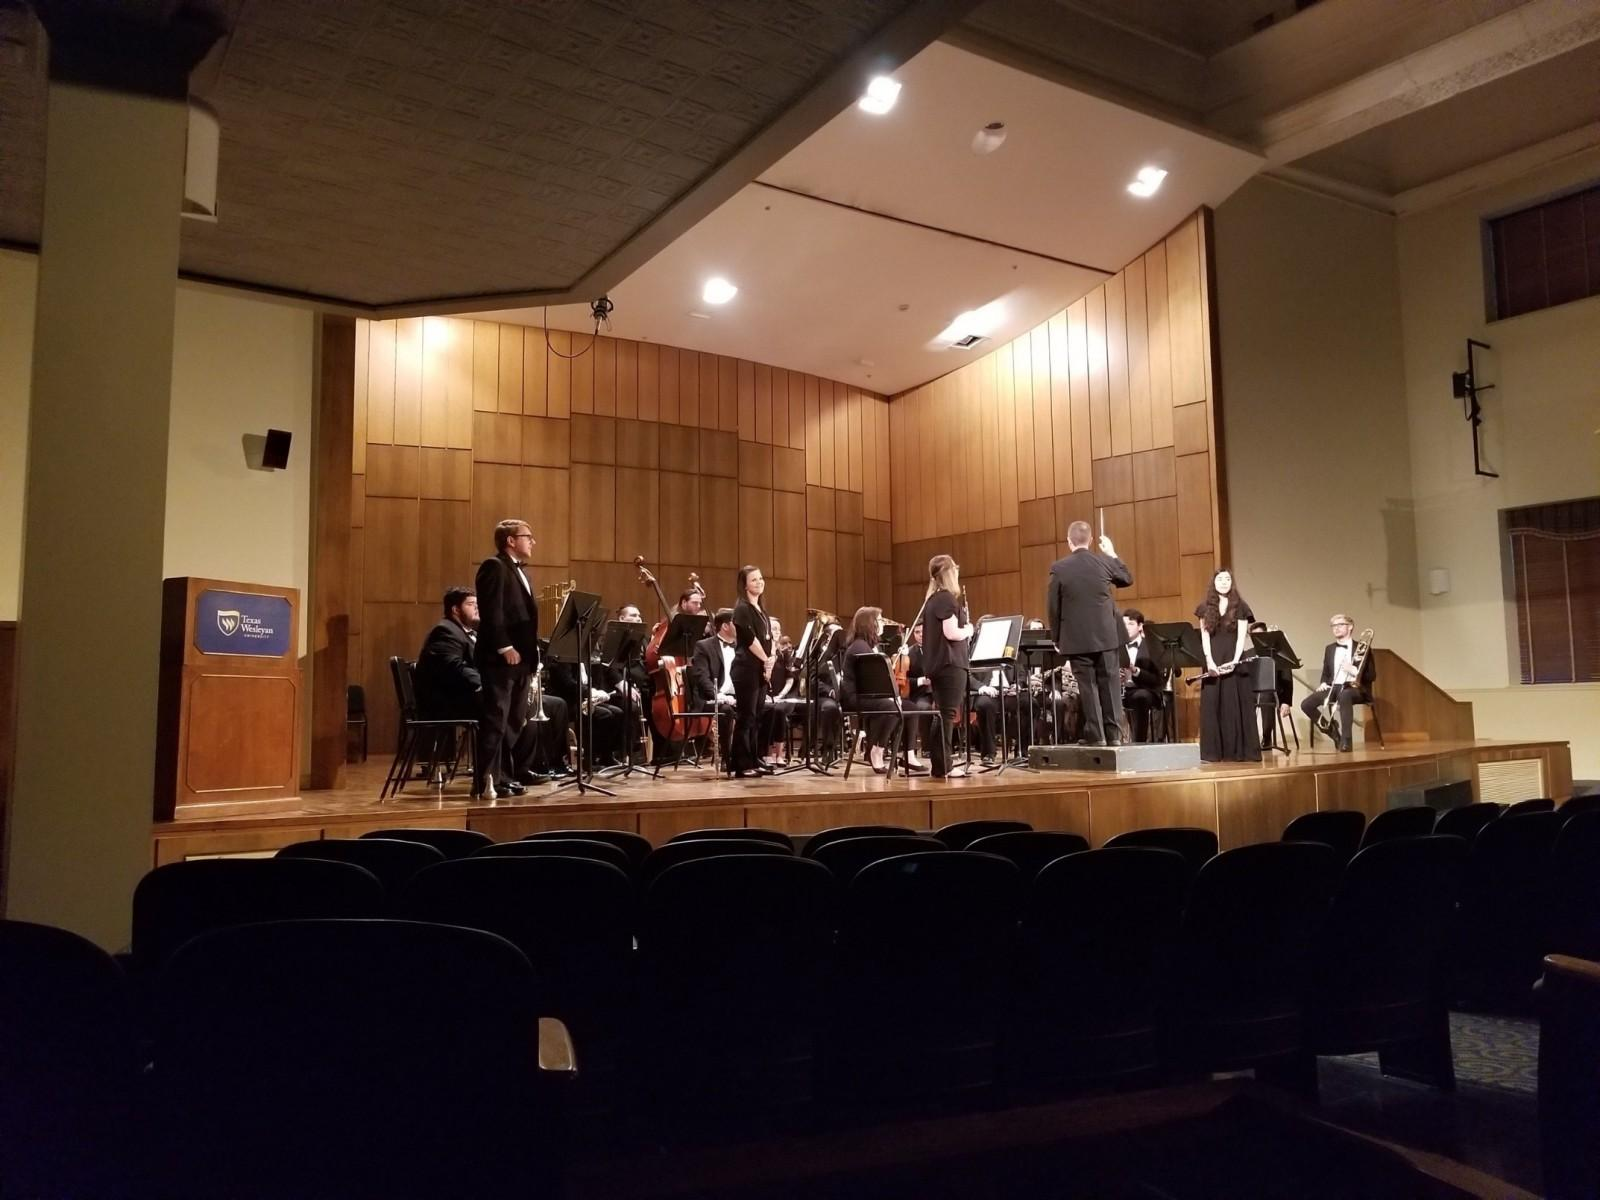 Wind Ensemble Concert wows crowd